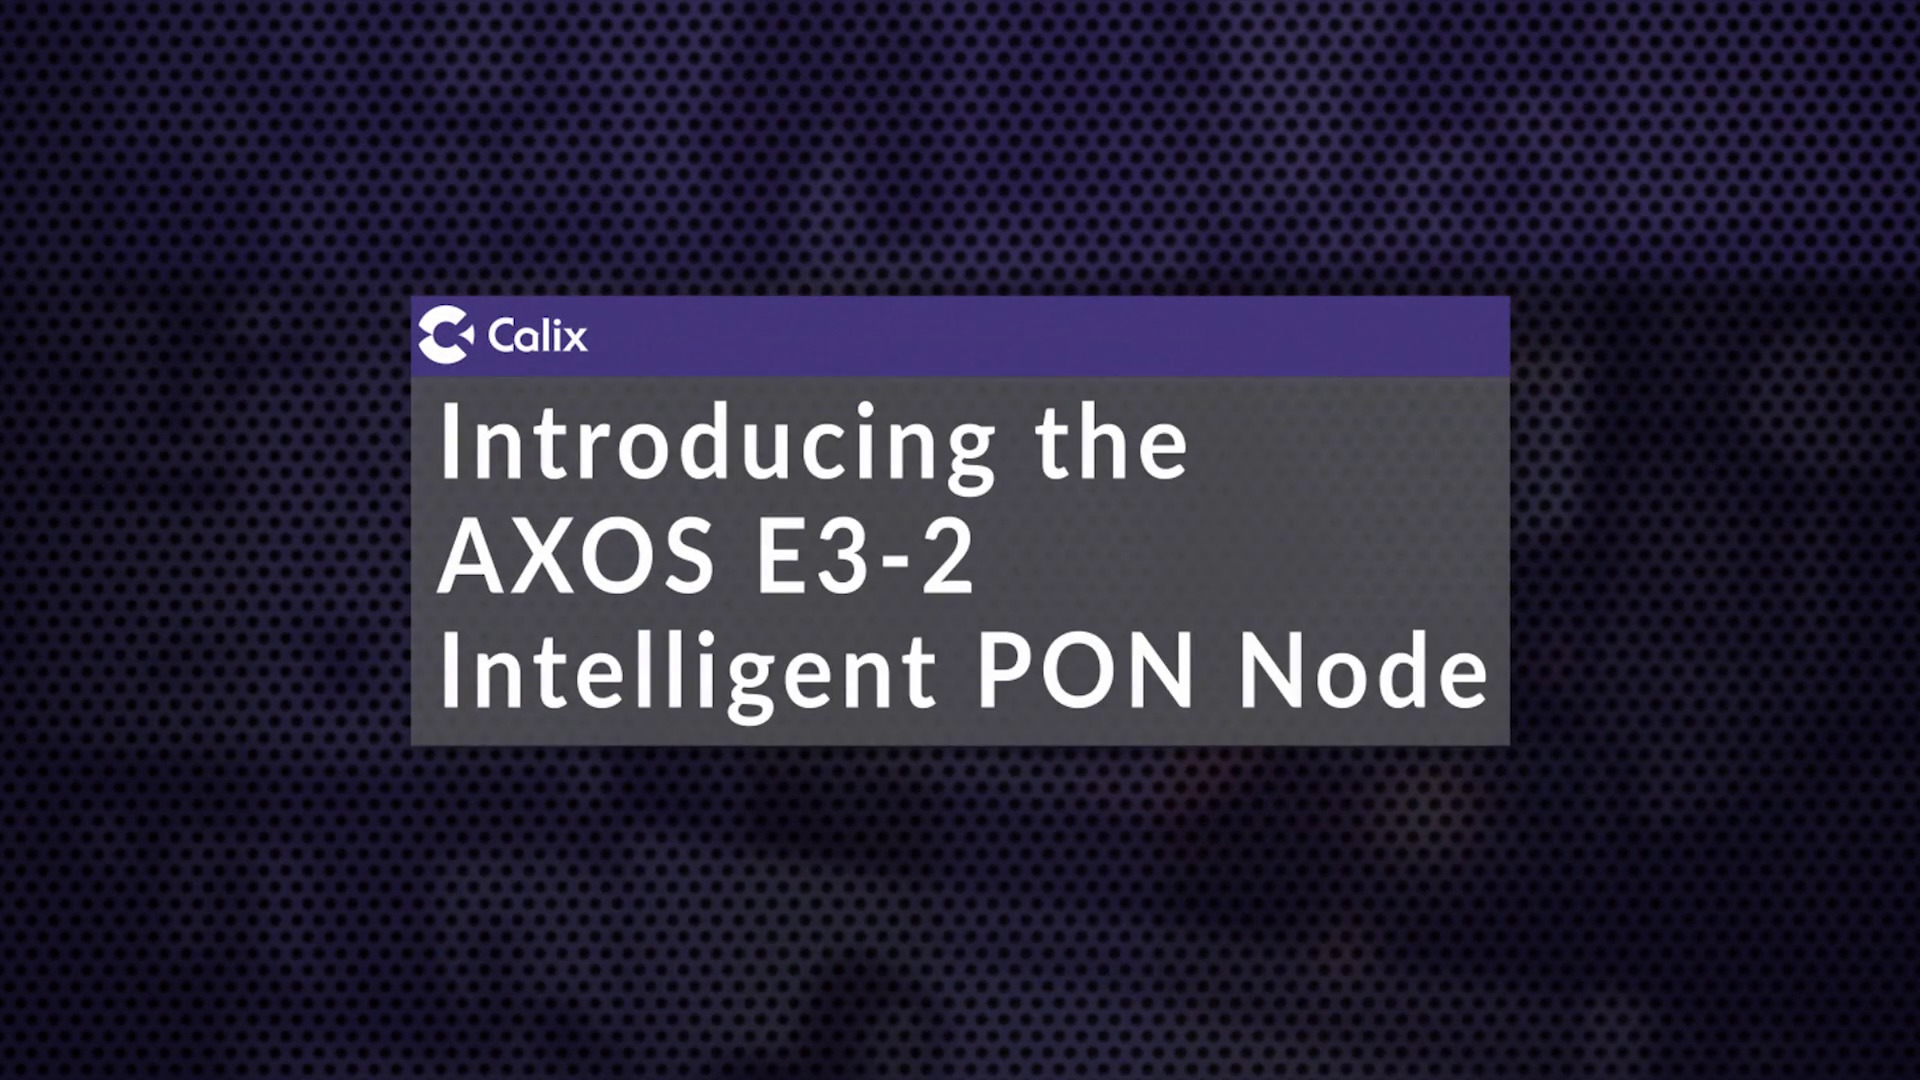 Introducing the AXOS E3-2 Intelligent PON Node